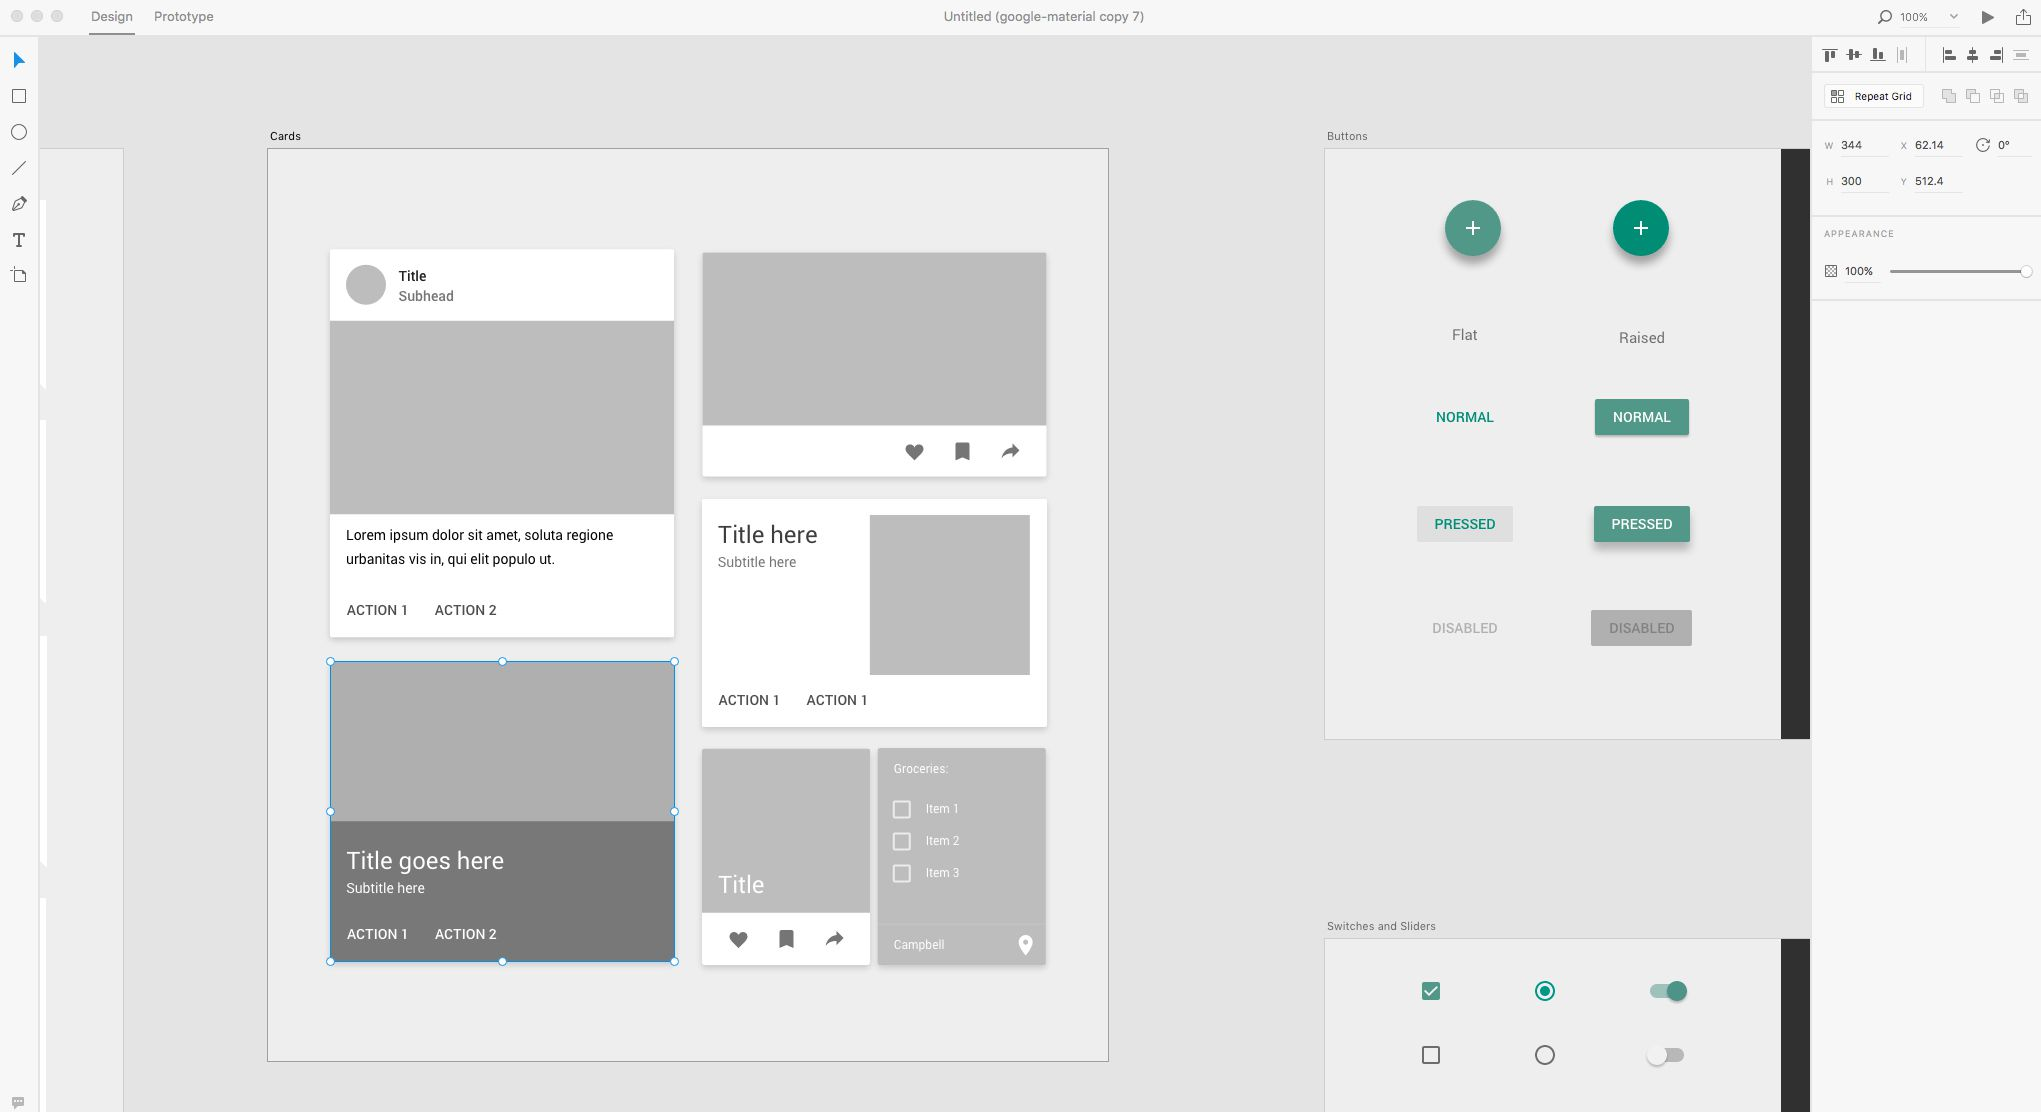 How to Create a Material Design Card in Adobe Experience